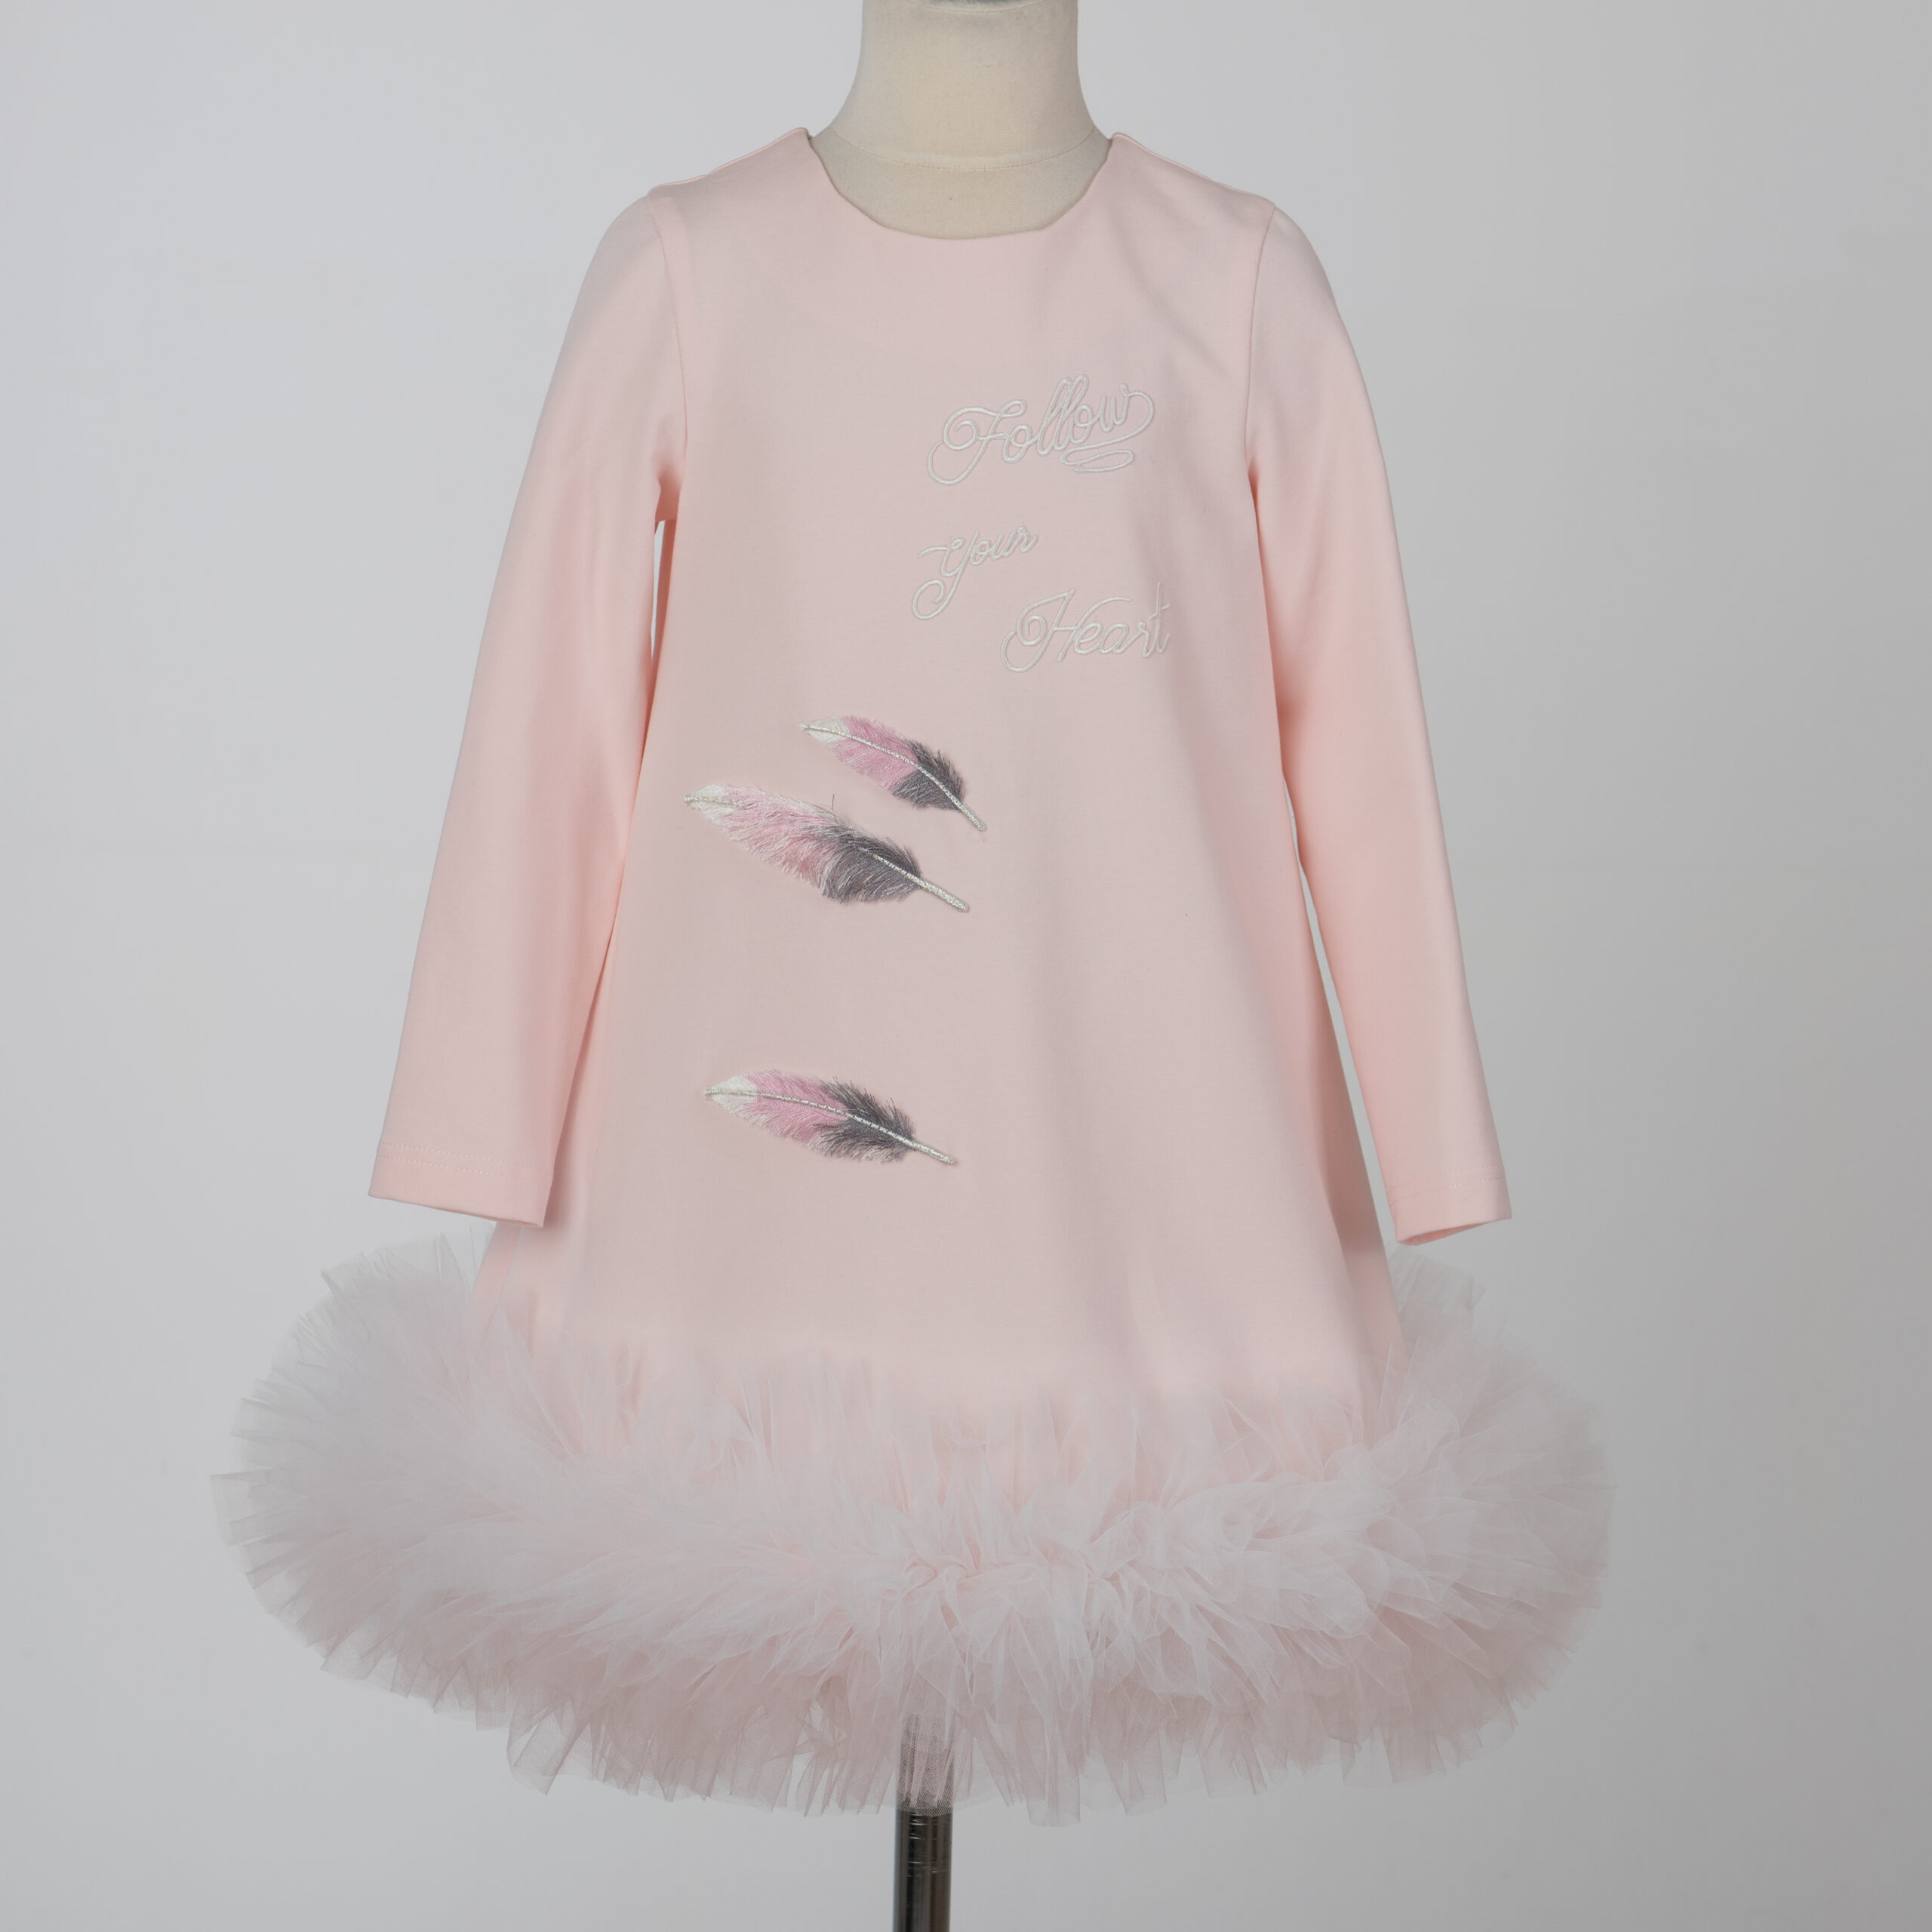 Daga Pink Tule Dress With Feathers